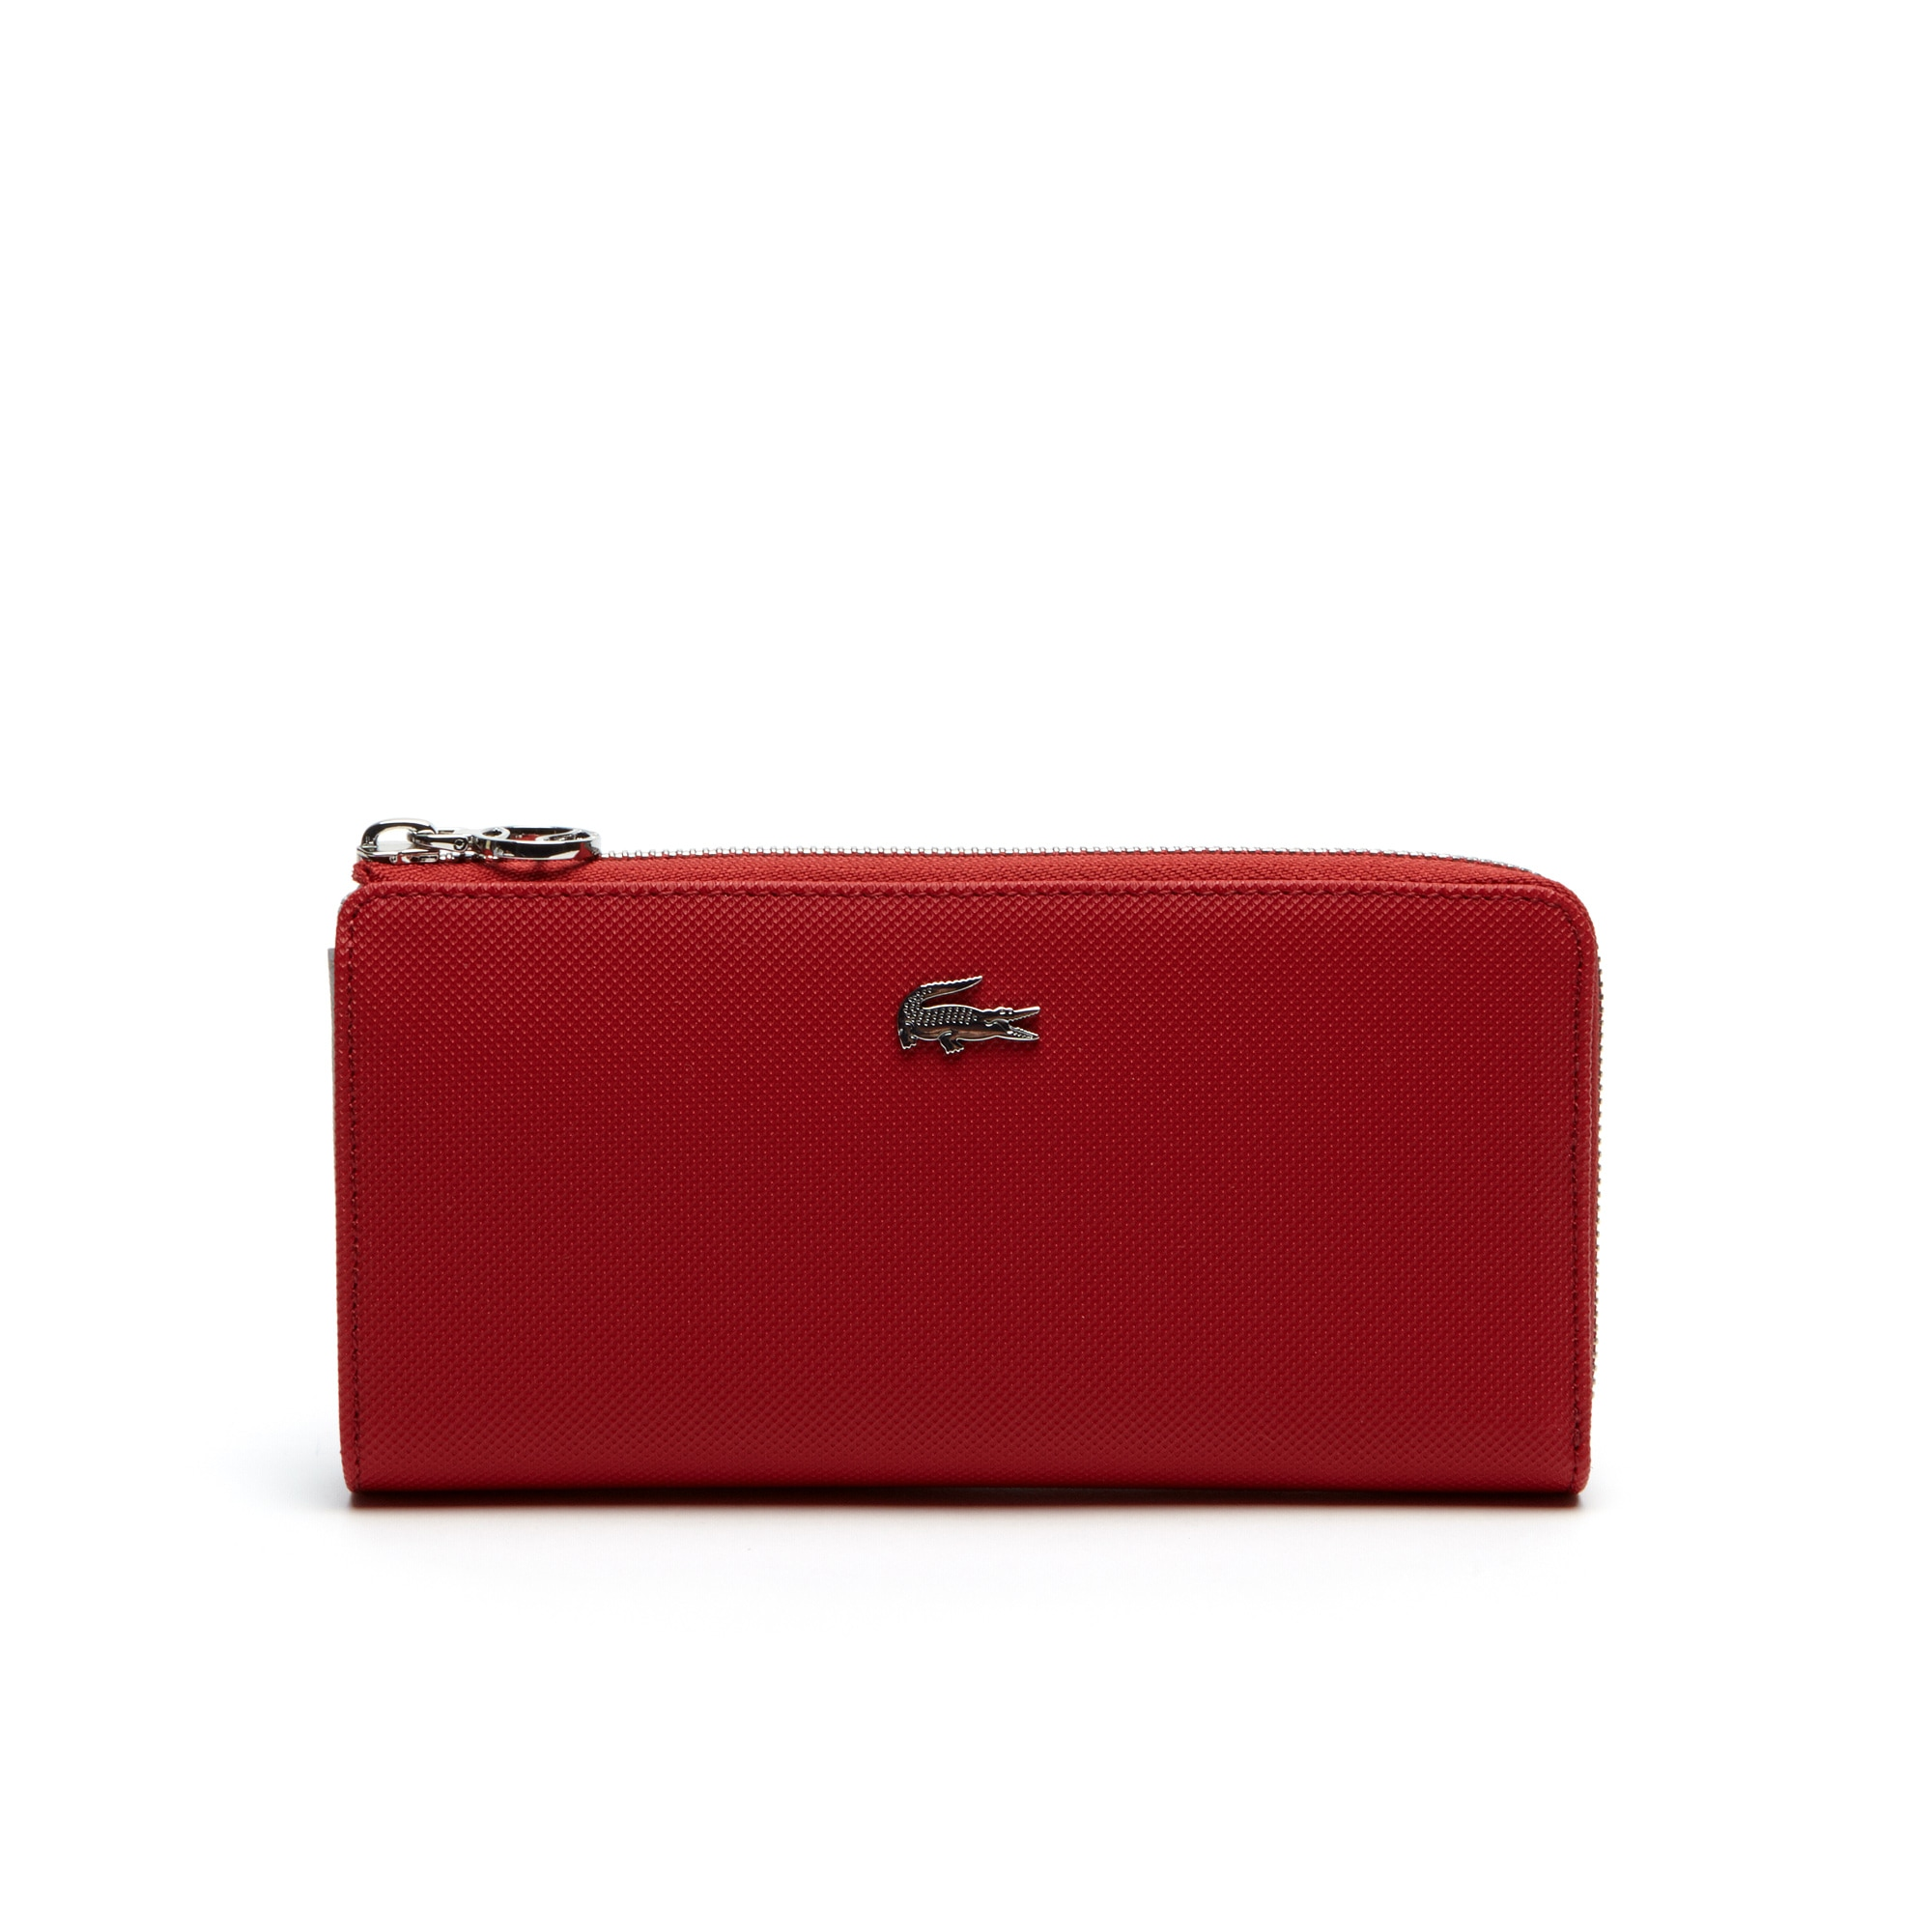 Women's Daily Classic Coated Piqué Canvas 10 Card Zip Wallet